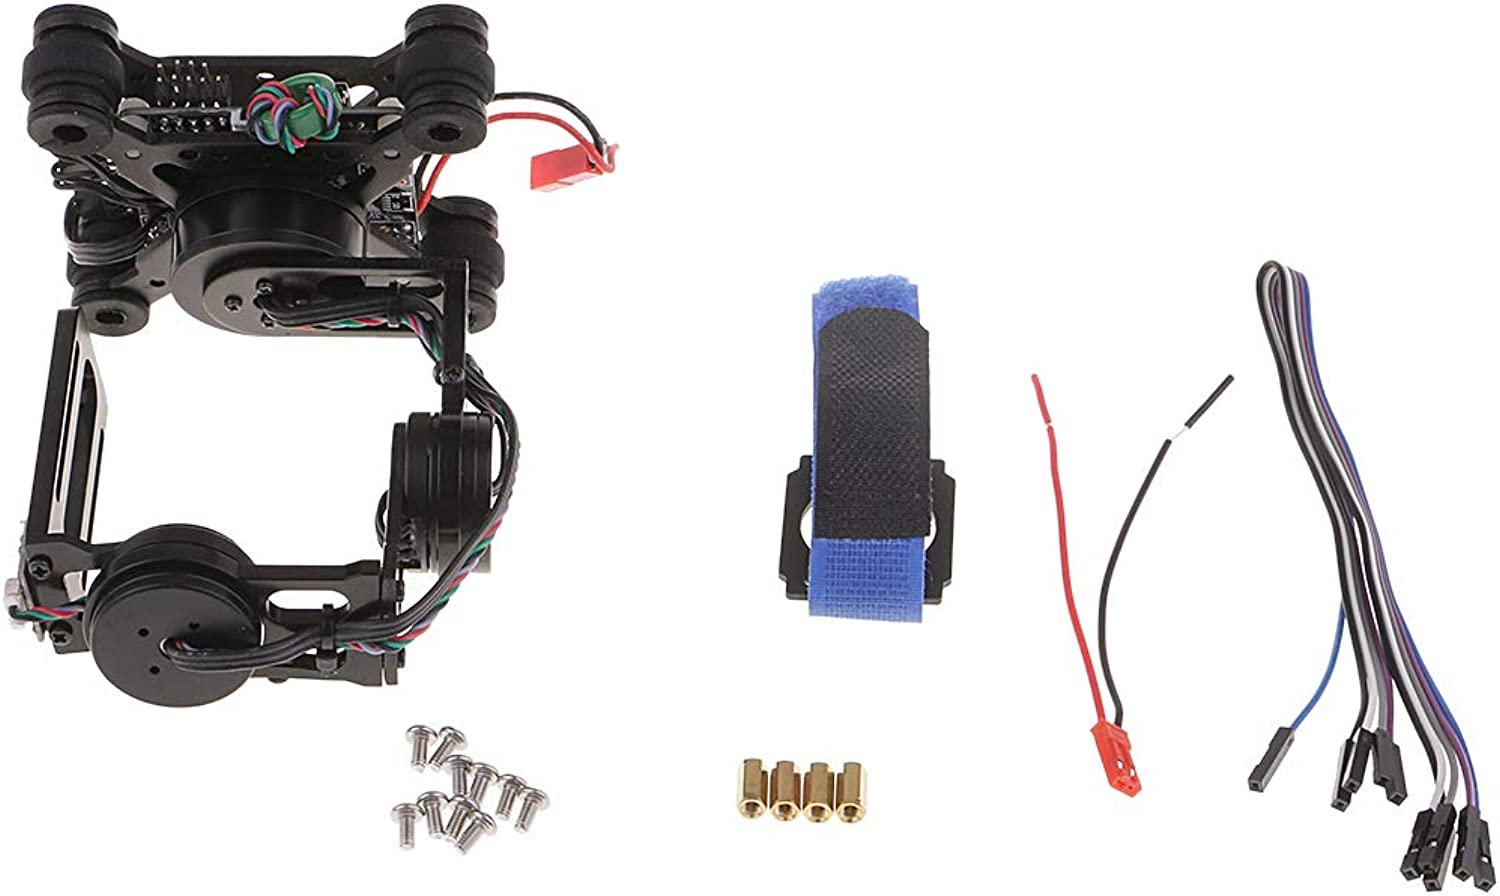 D DOLITY RTF 3 Axis Brushless Gimbal Camera with Motors Controller for Gopro 3 4 Camera